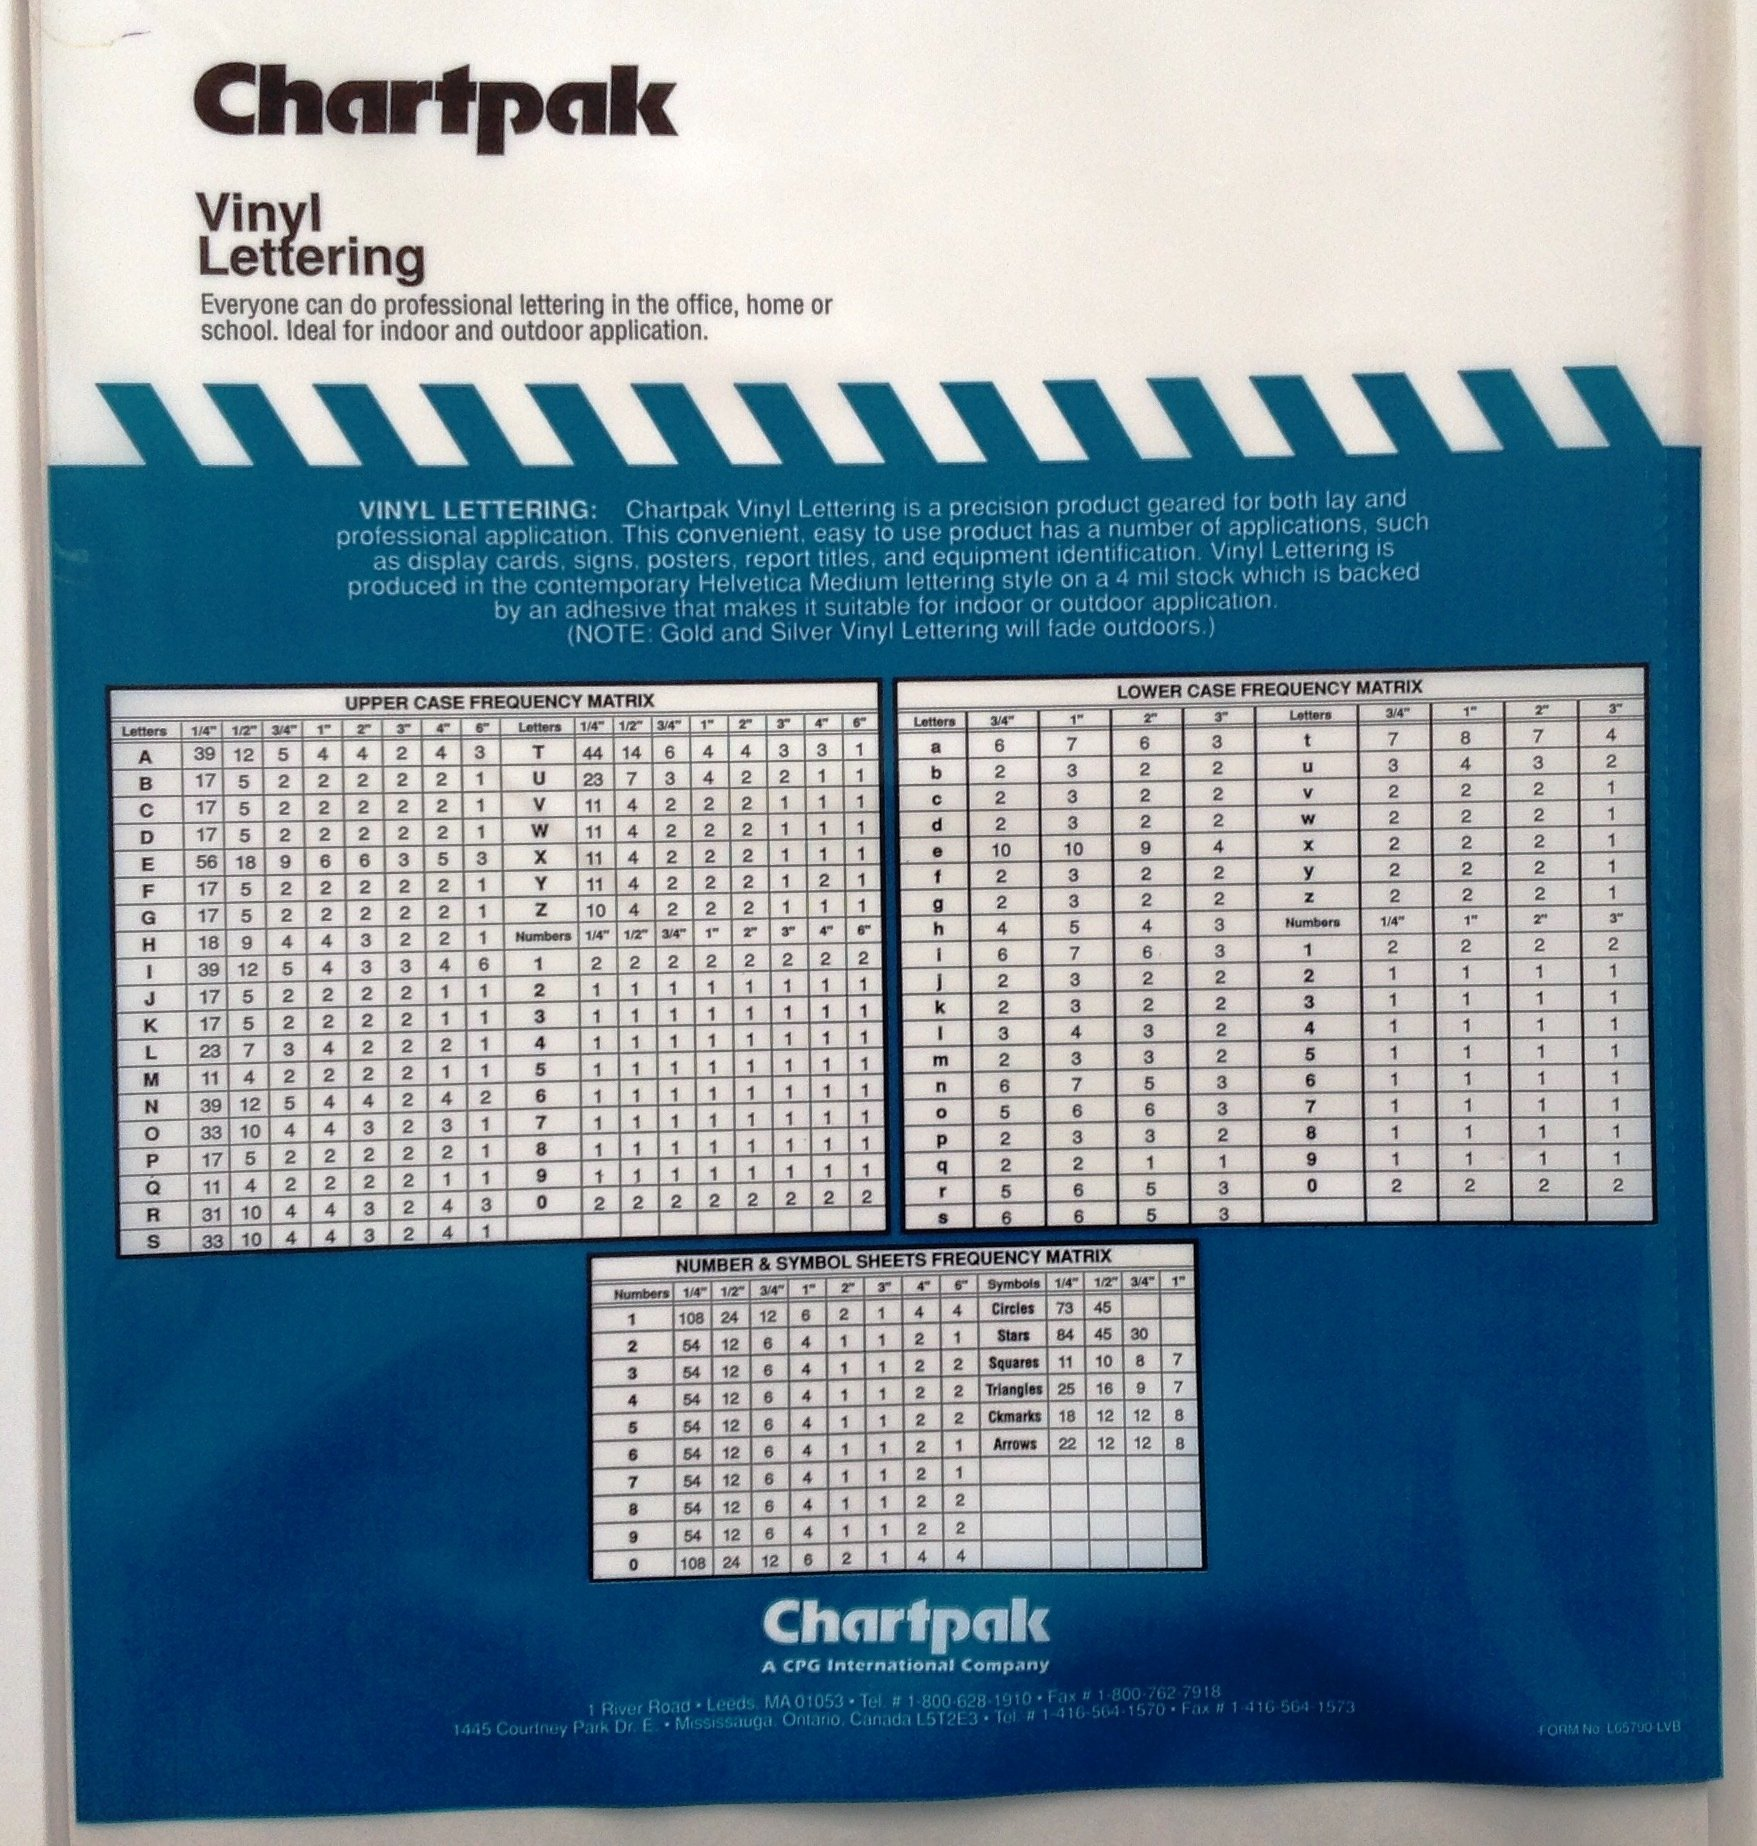 Chartpak 3-inch Black Stick-on Vinyl Numbers (01170), 3 PACKS by Chartpak (Image #2)